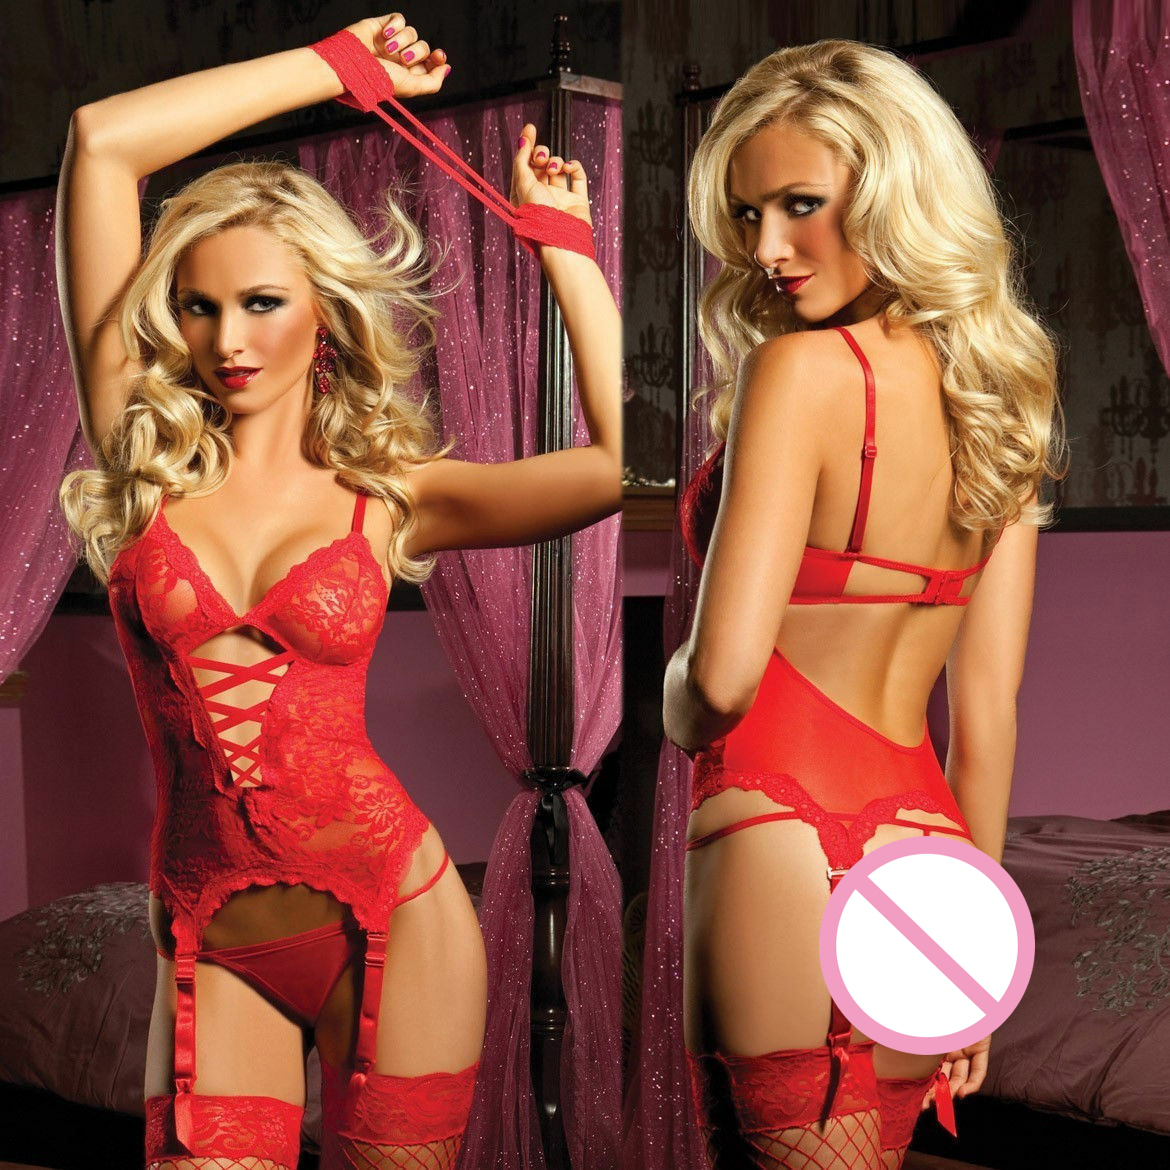 Summer Womens Sexy Lace Lingerie Babydoll G-String Thong See-through Underwear Nightwear Female Erotic Sex Costume